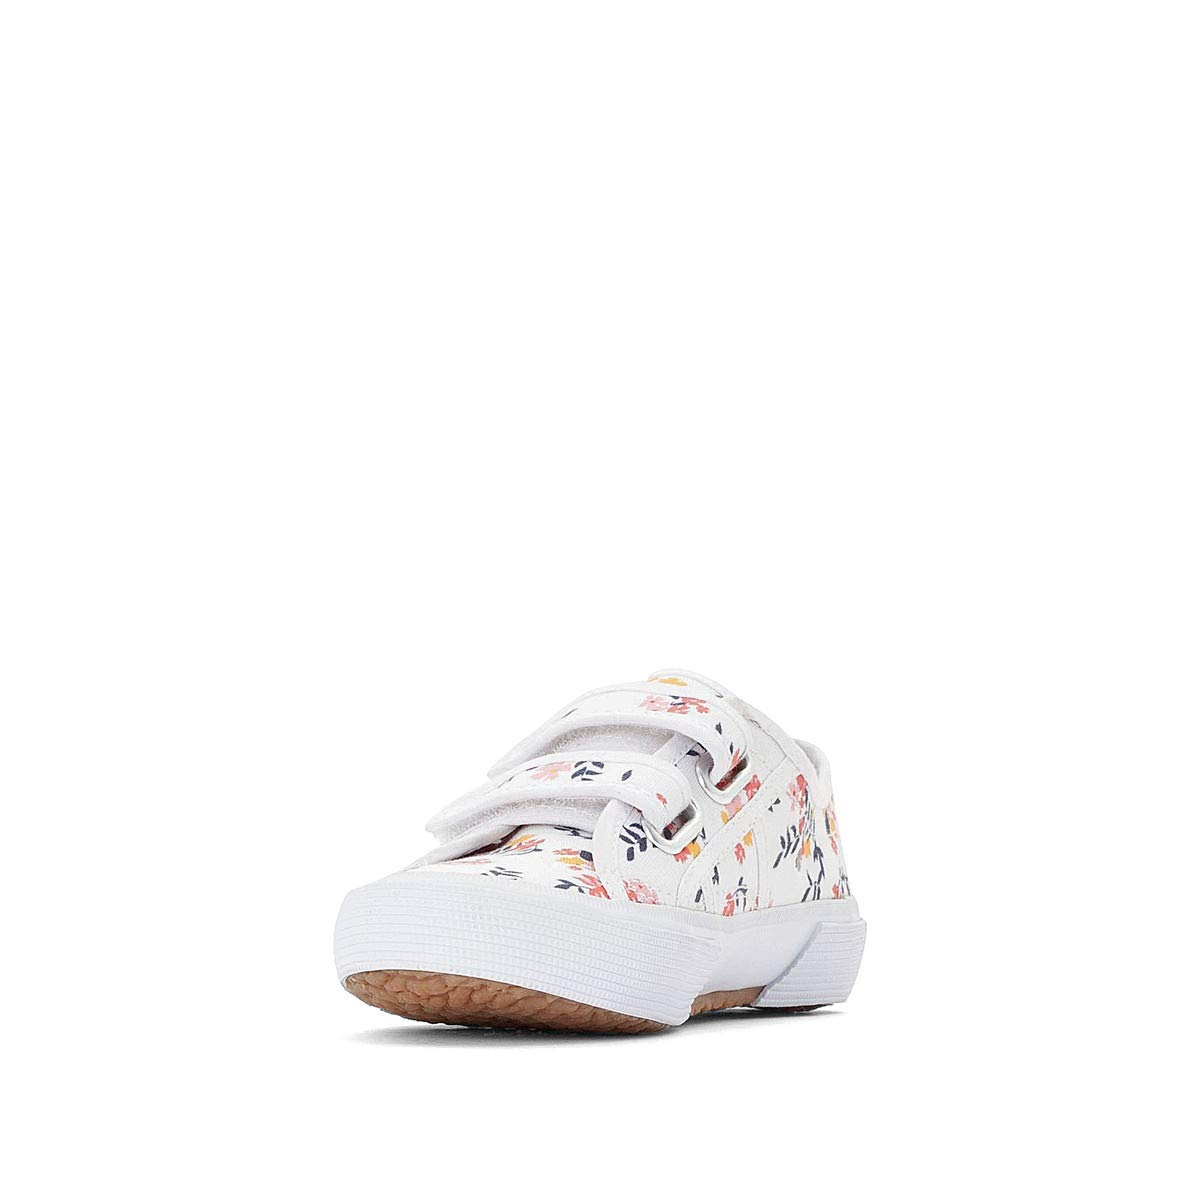 La Redoute Collections Big Girls Canvas Trainers White Size 37